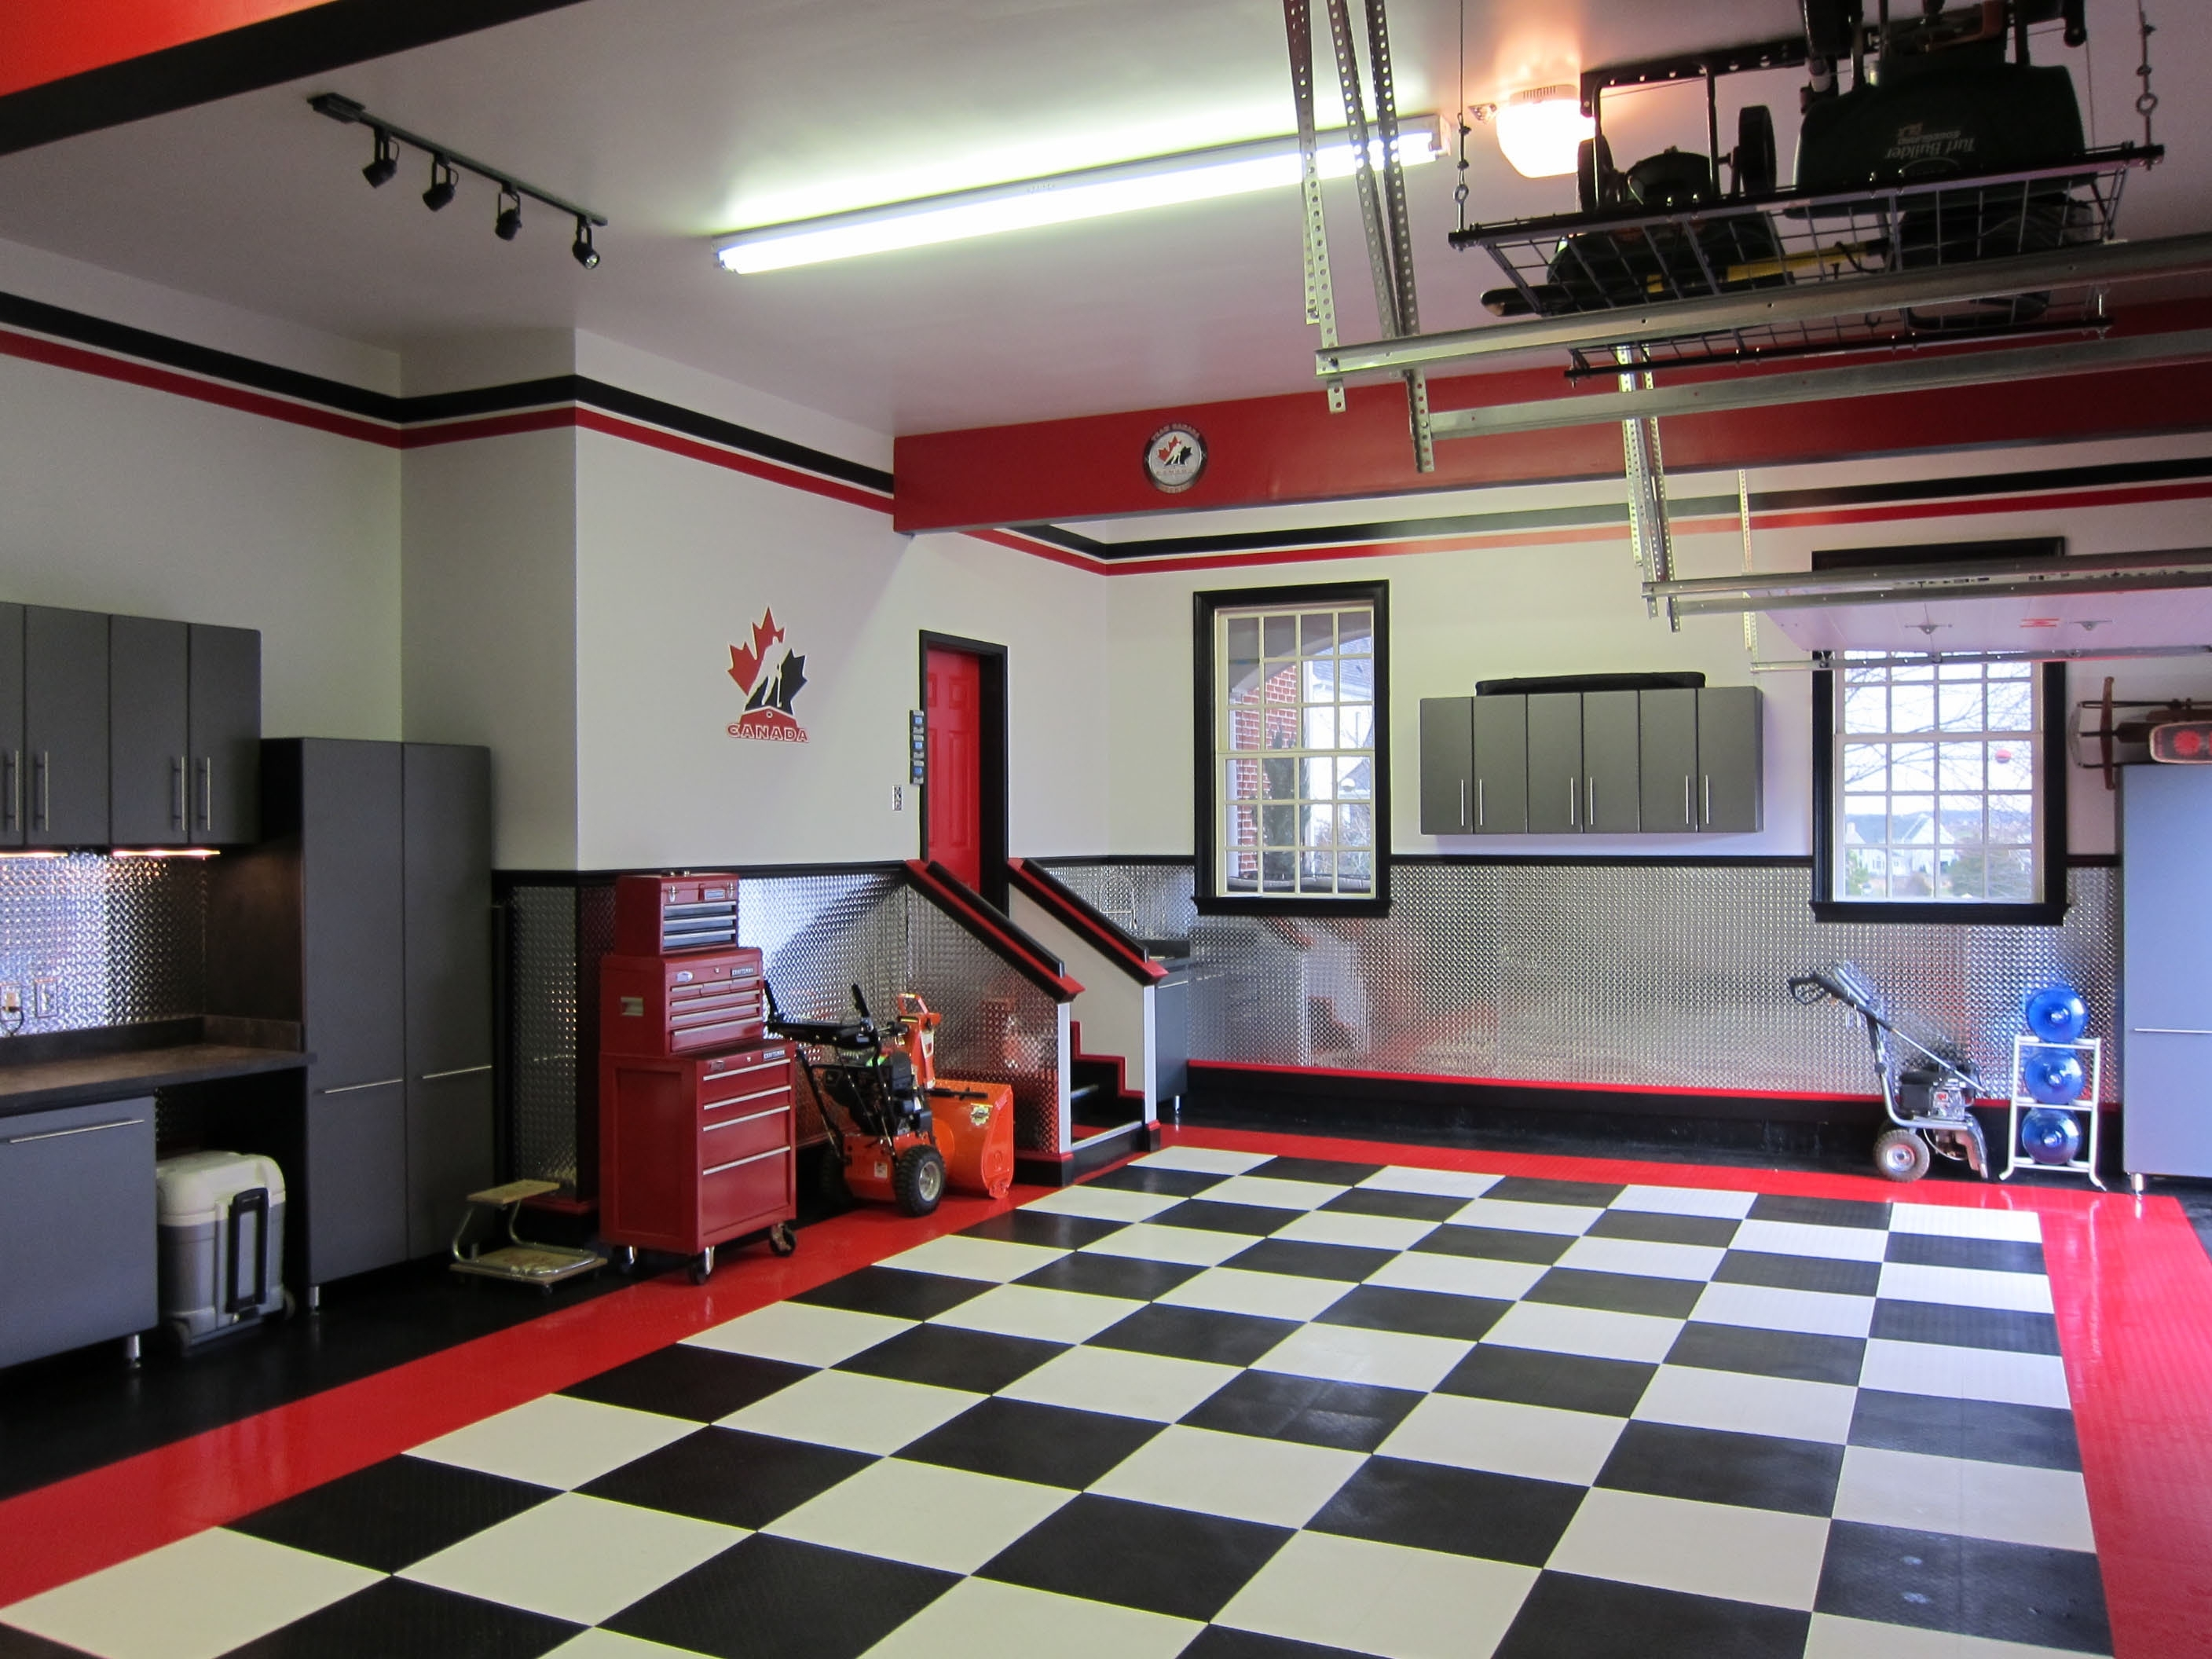 Modern Garage Decors With Cool Checkered Floor Tiled Ideas With With 2017 Garage Wall Accents (View 5 of 15)